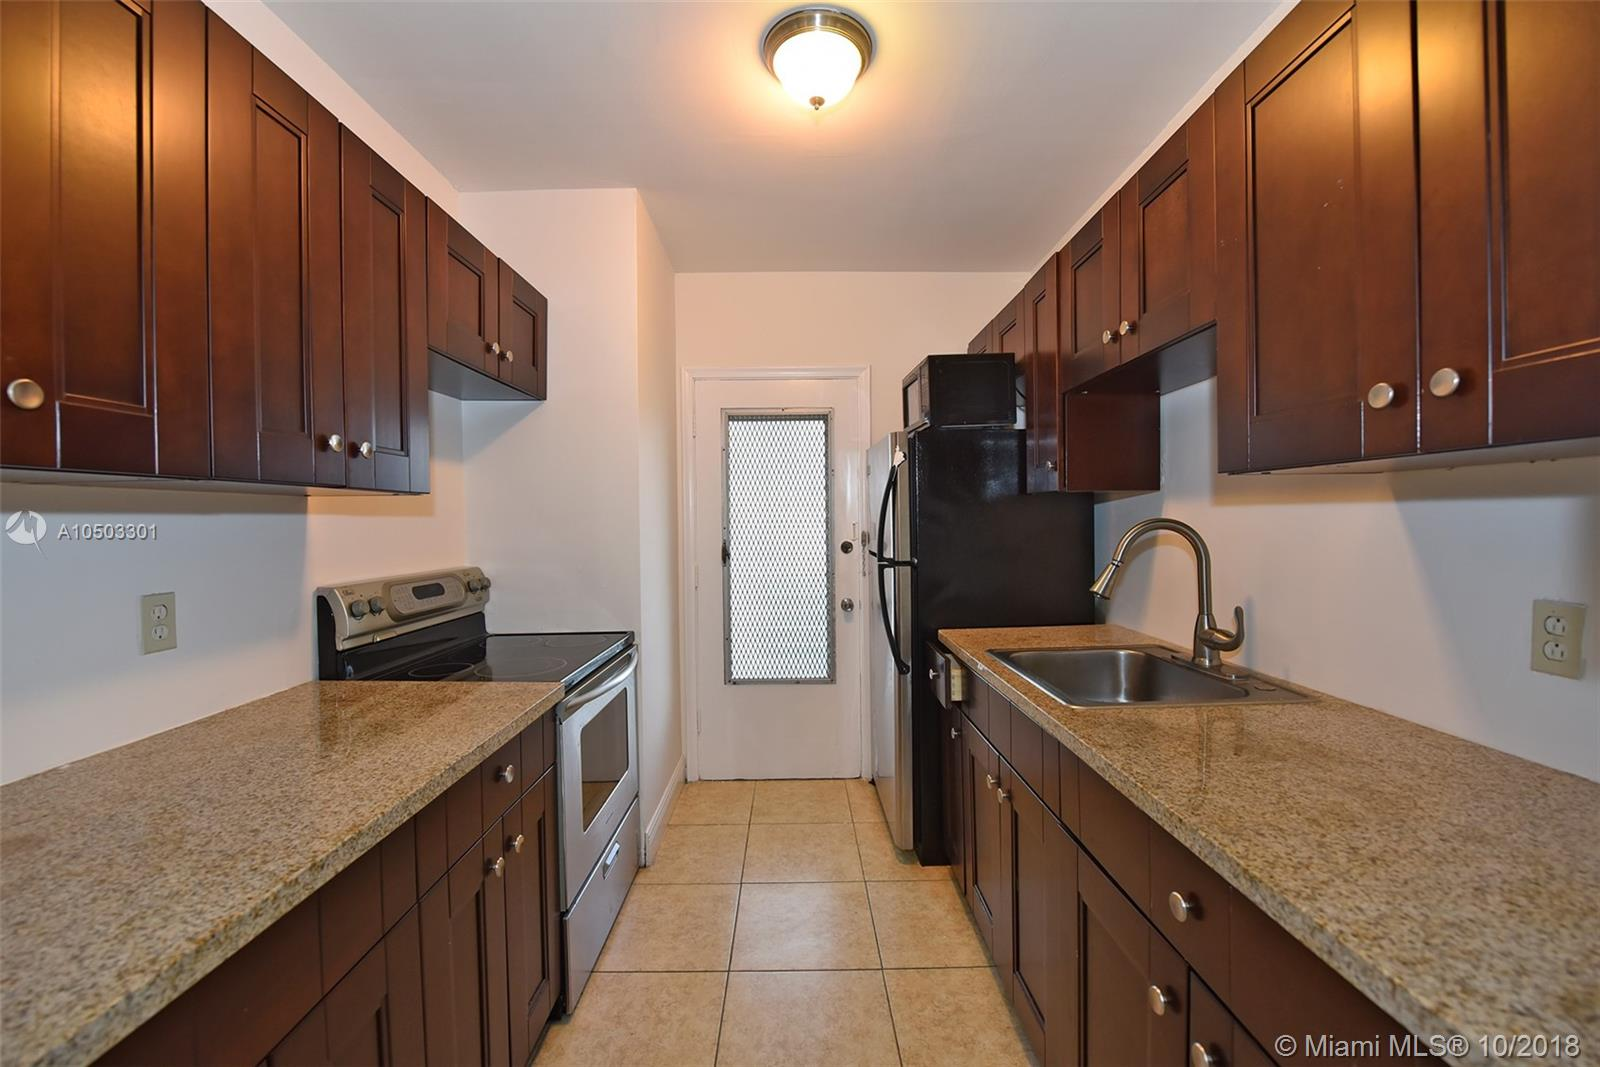 270 NE 191st St # 107, Miami, Florida 33179, 1 Bedroom Bedrooms, ,1 BathroomBathrooms,Residential,For Sale,270 NE 191st St # 107,A10503301